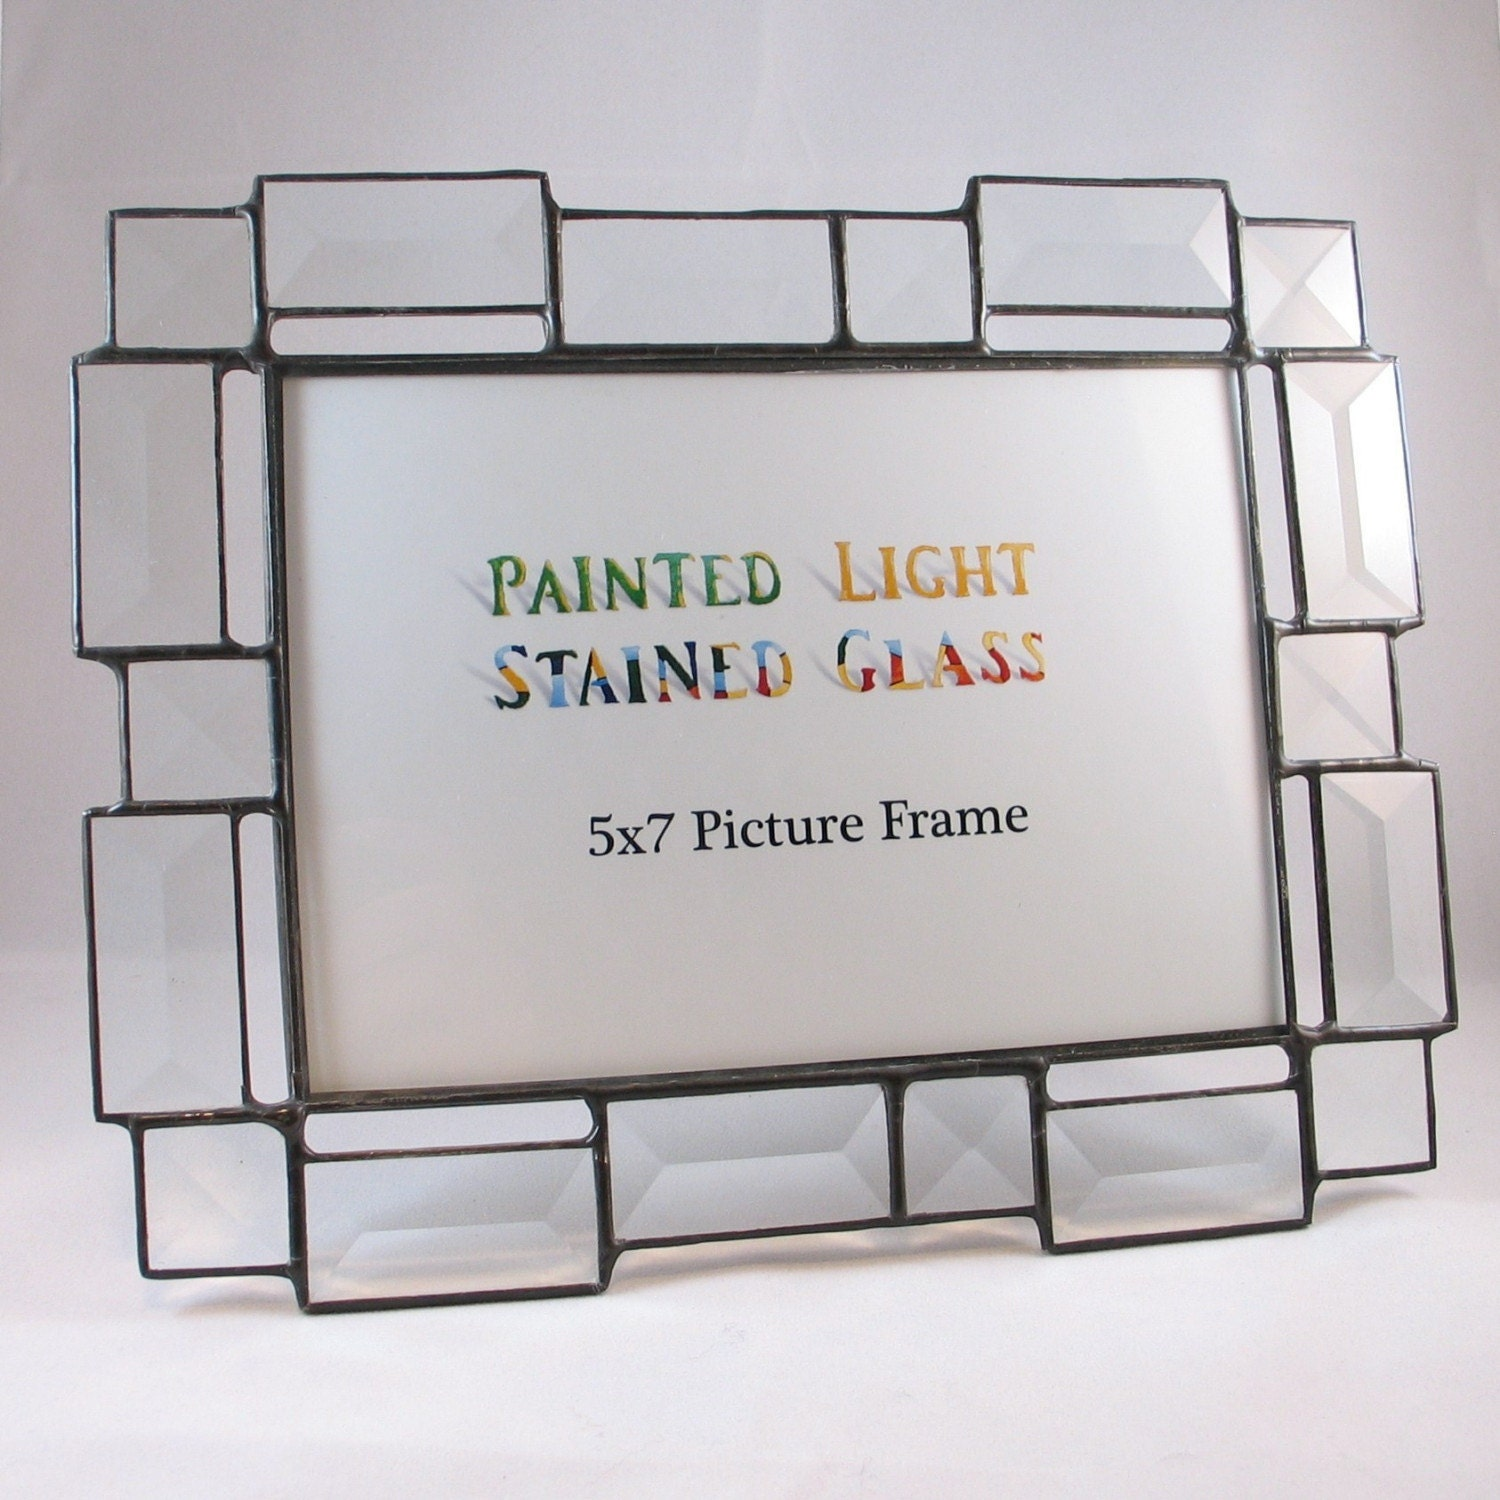 5x7 stained glass bevel picture frame. Black Bedroom Furniture Sets. Home Design Ideas